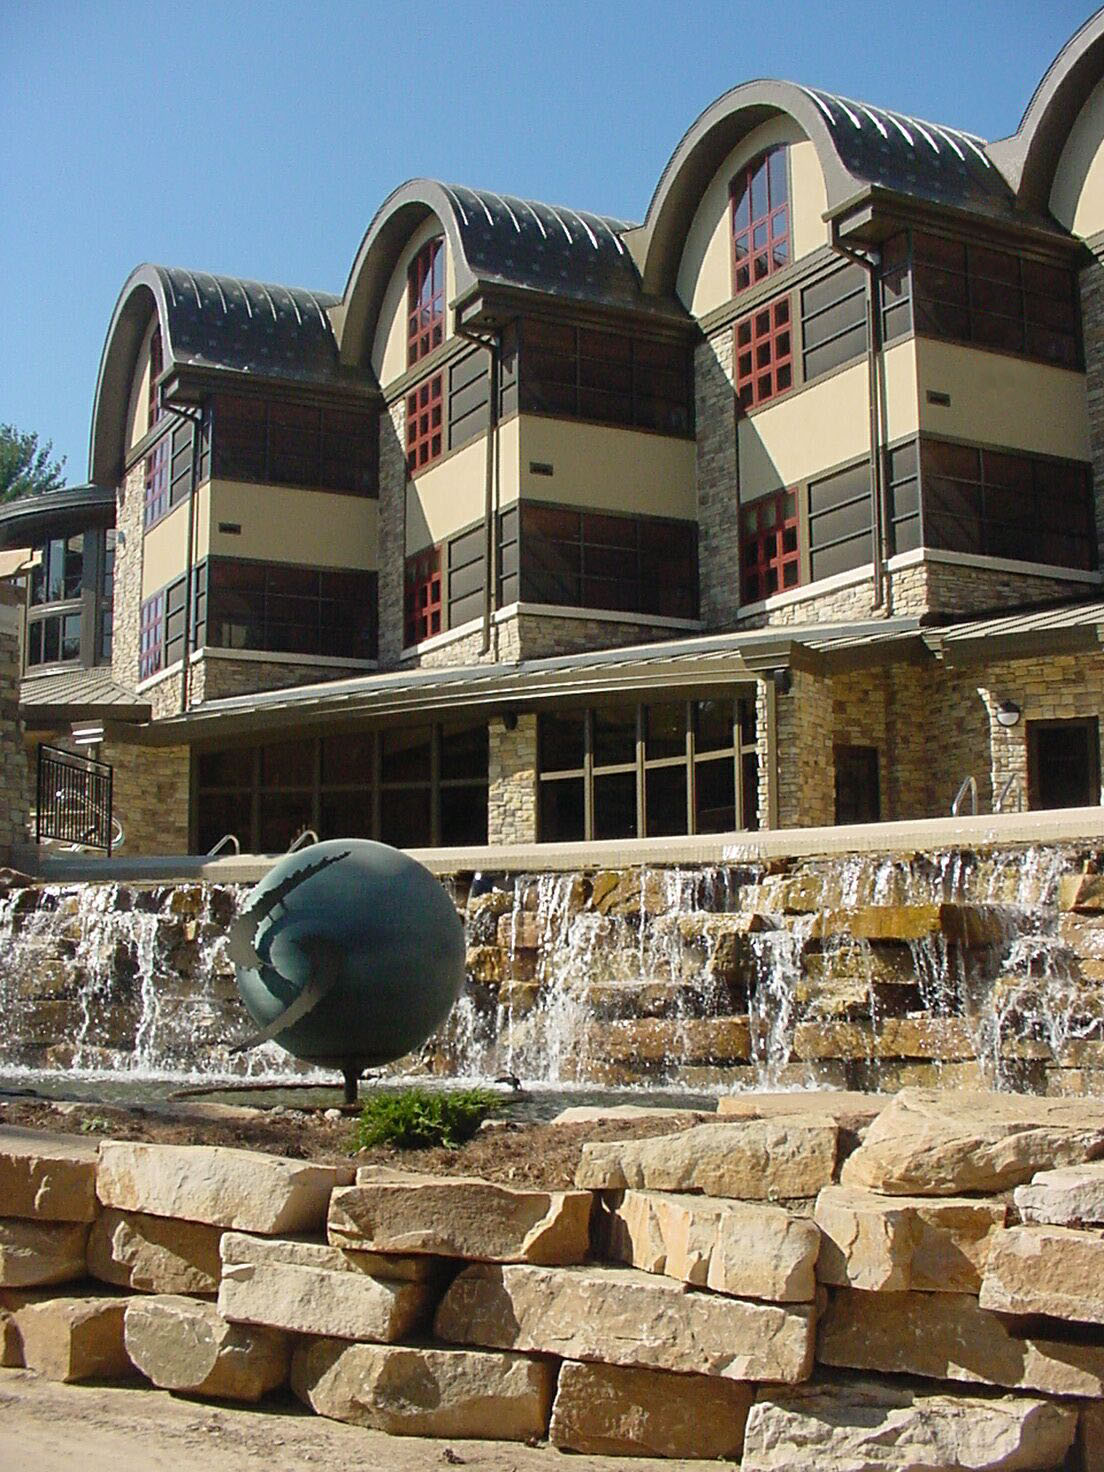 Outside view of the building and fountain area at Sundara Spa in Wisconsin Dells, WI